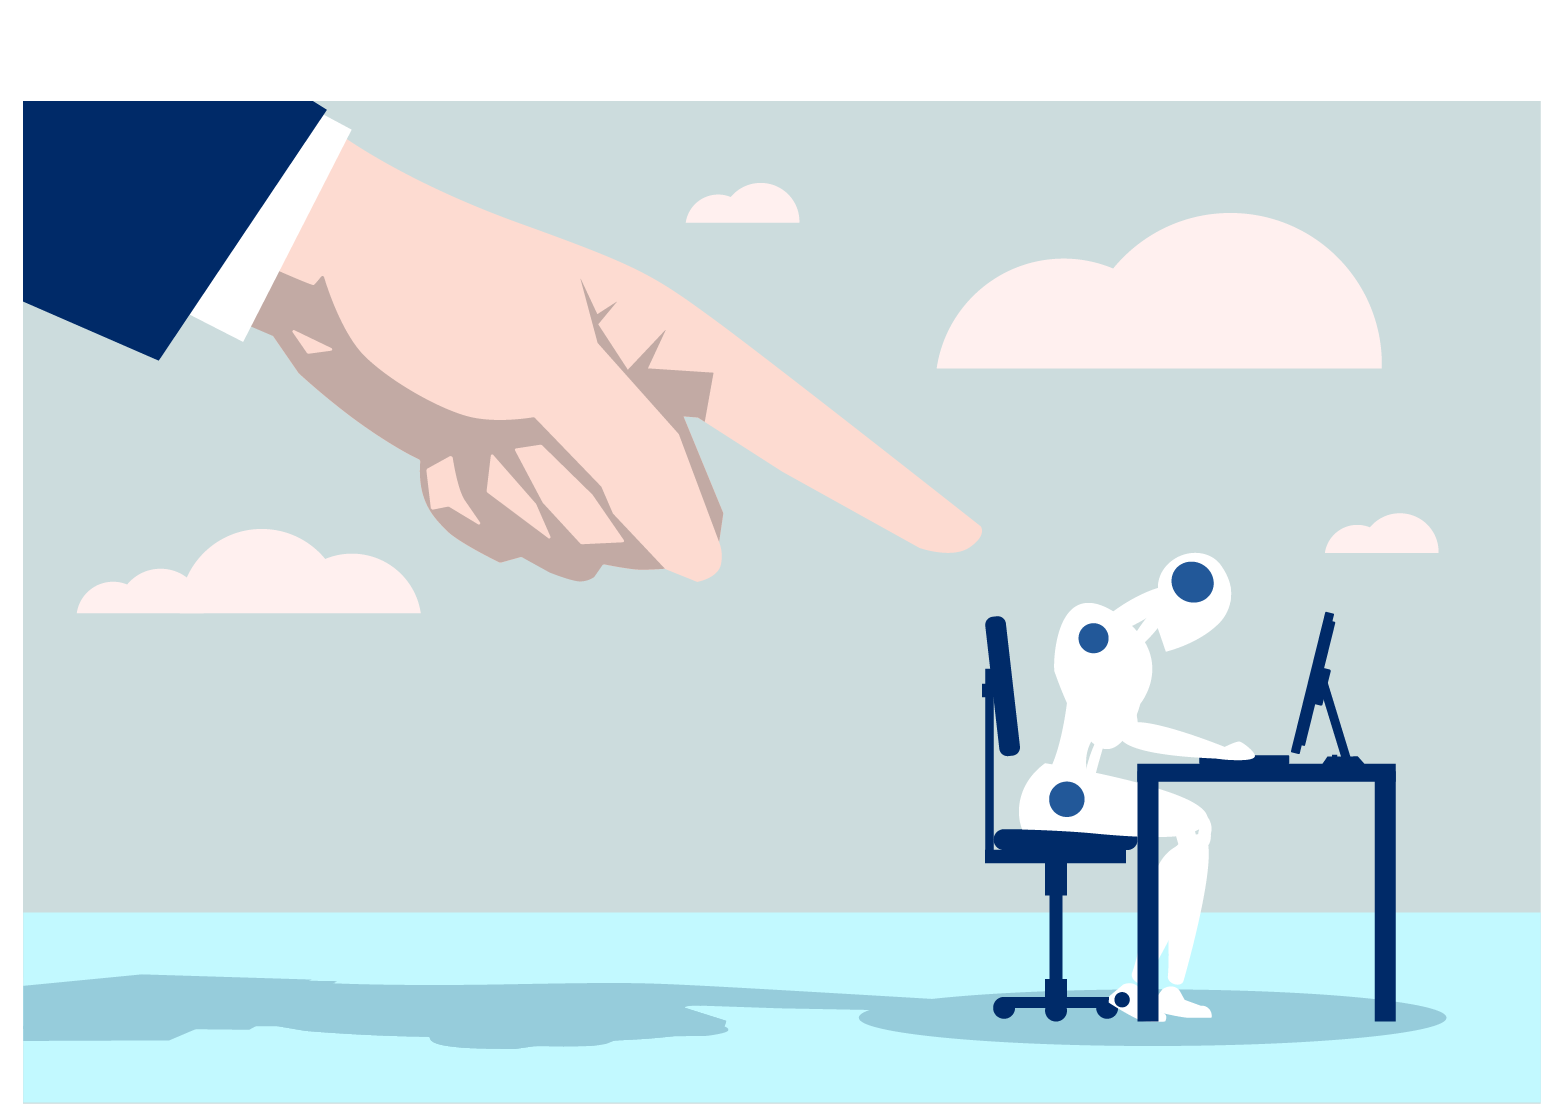 What lack i yet clipart image library stock 4 reasons why organizations struggle to become truly AI-powered image library stock